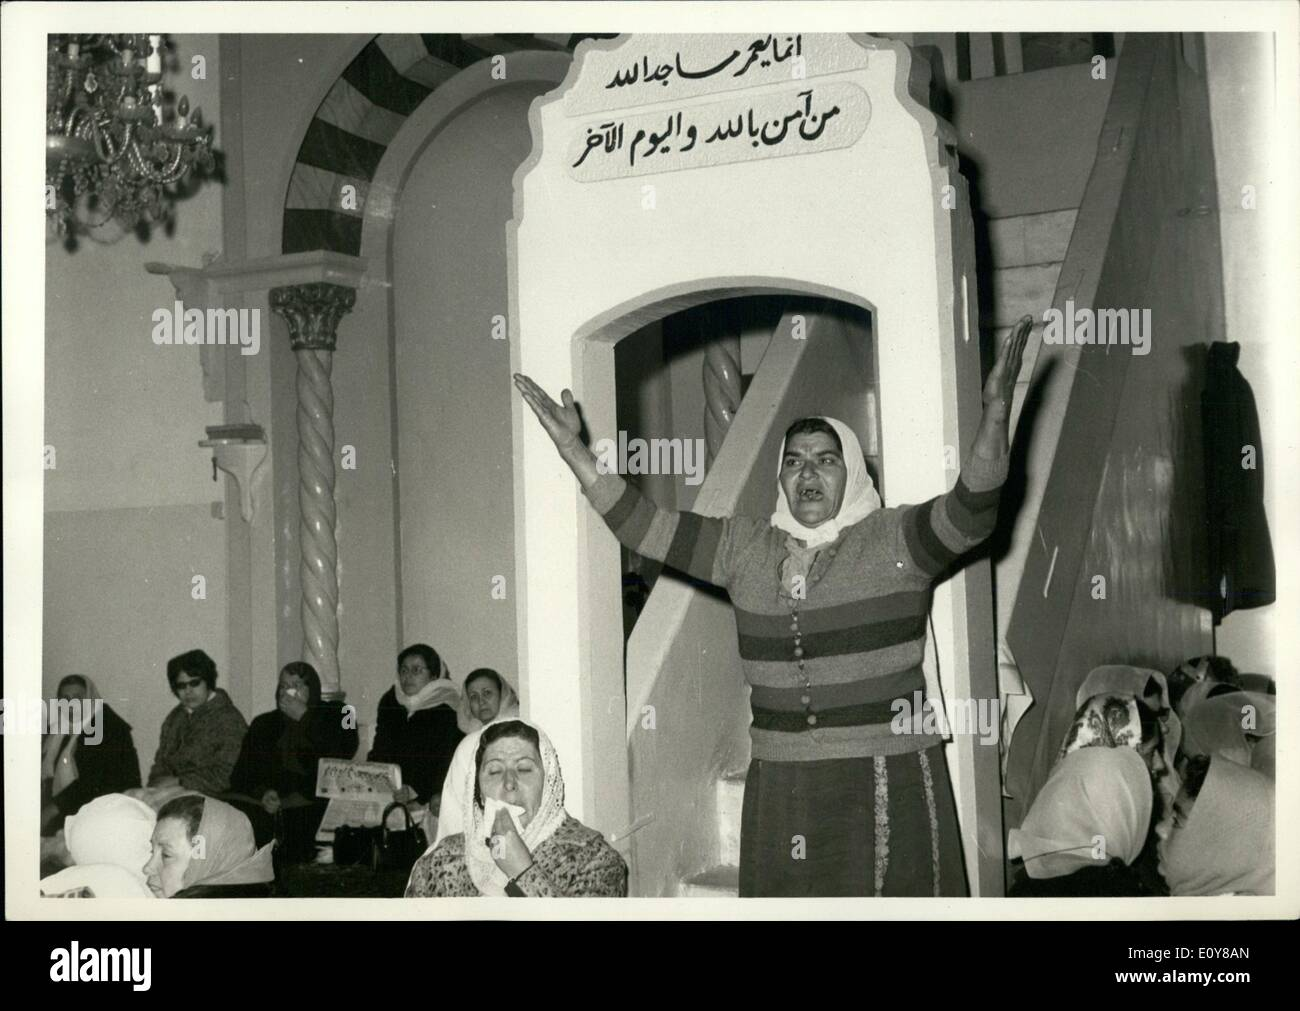 Feb. 02, 1969 - Jordan - Amman: Moslem and Christian women of Amman observed a one-day hunger sit-in the Hussein Grand Mosque of Amman, demonstrating the occupation of the West Bank, and conditions under Israeli occupation. - Stock Image